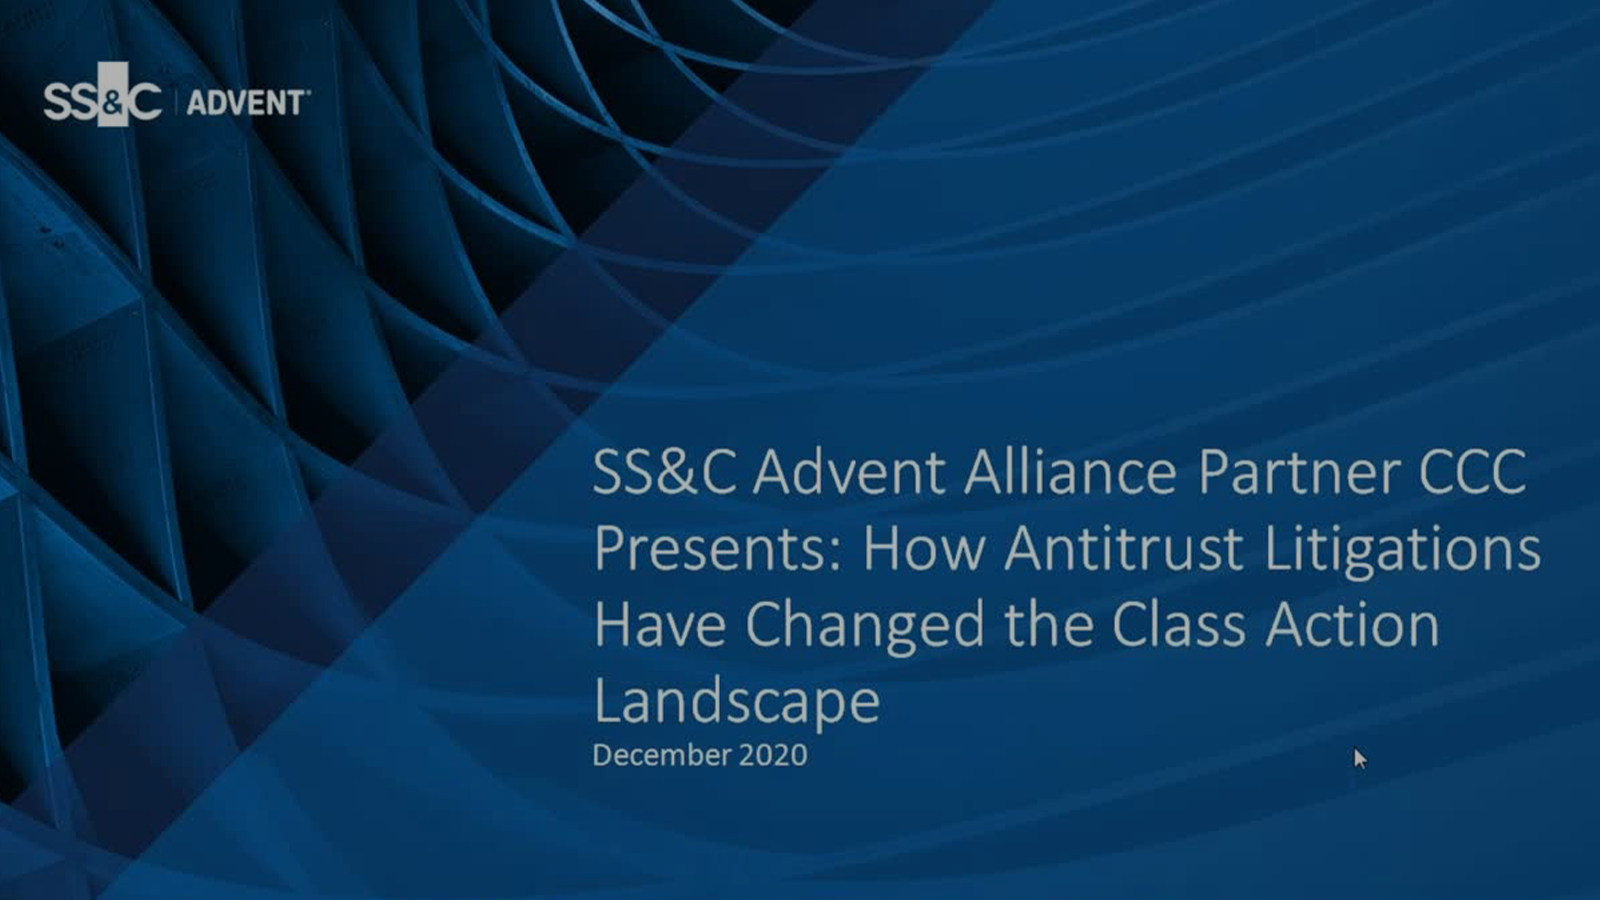 poster image for How Antitrust Litigations Have Changed the Class Action Landscape